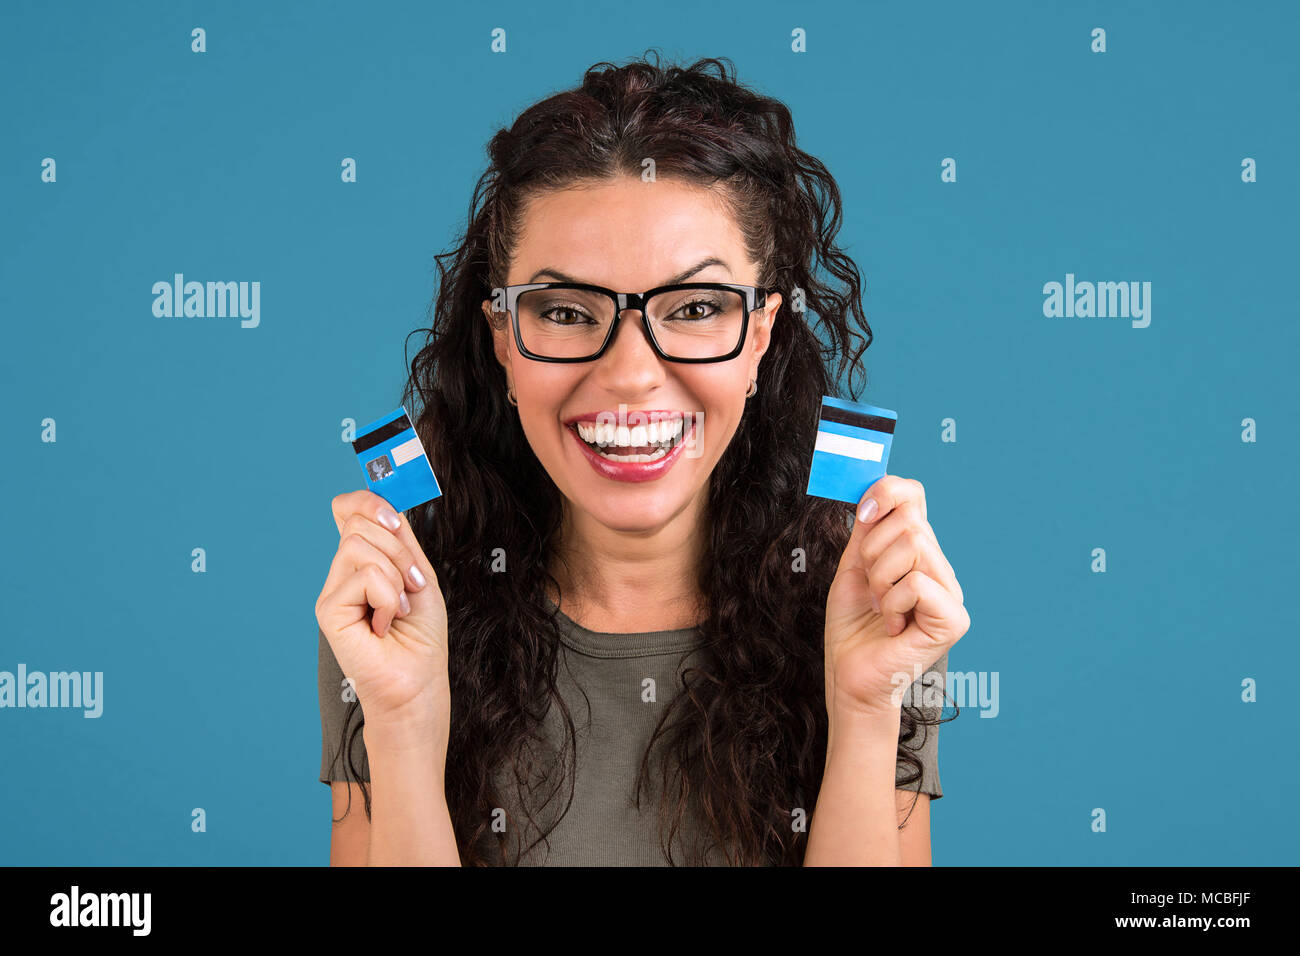 Happy debt free woman in glasses holding a credit card cut in two pieces - Stock Image